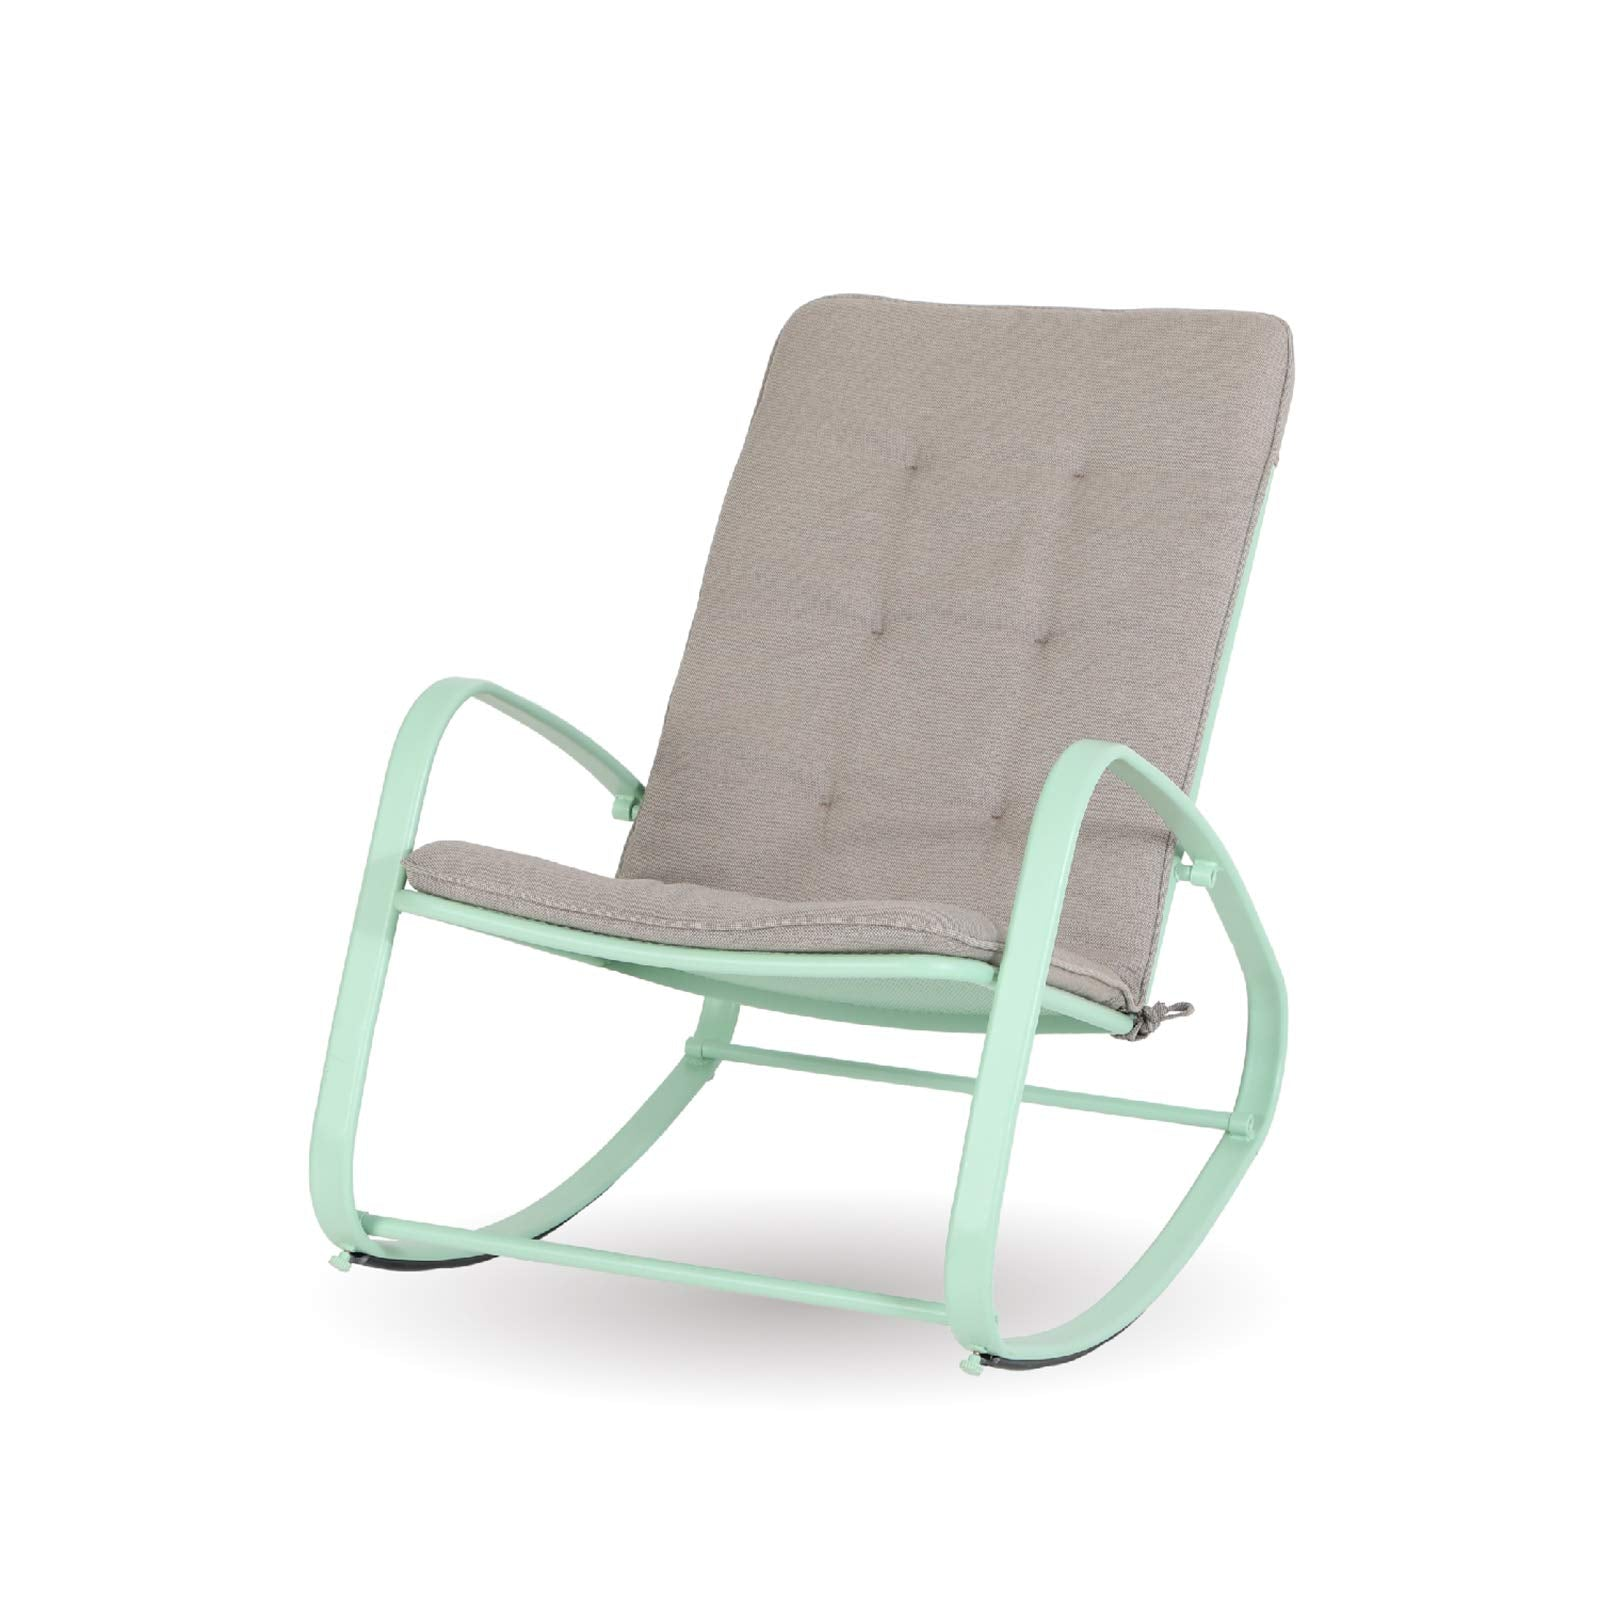 Alphamarts coupon: Sophia & William Outdoor Patio Rocking Chair Padded Steel Rocker Chairs Support 300lbs Green